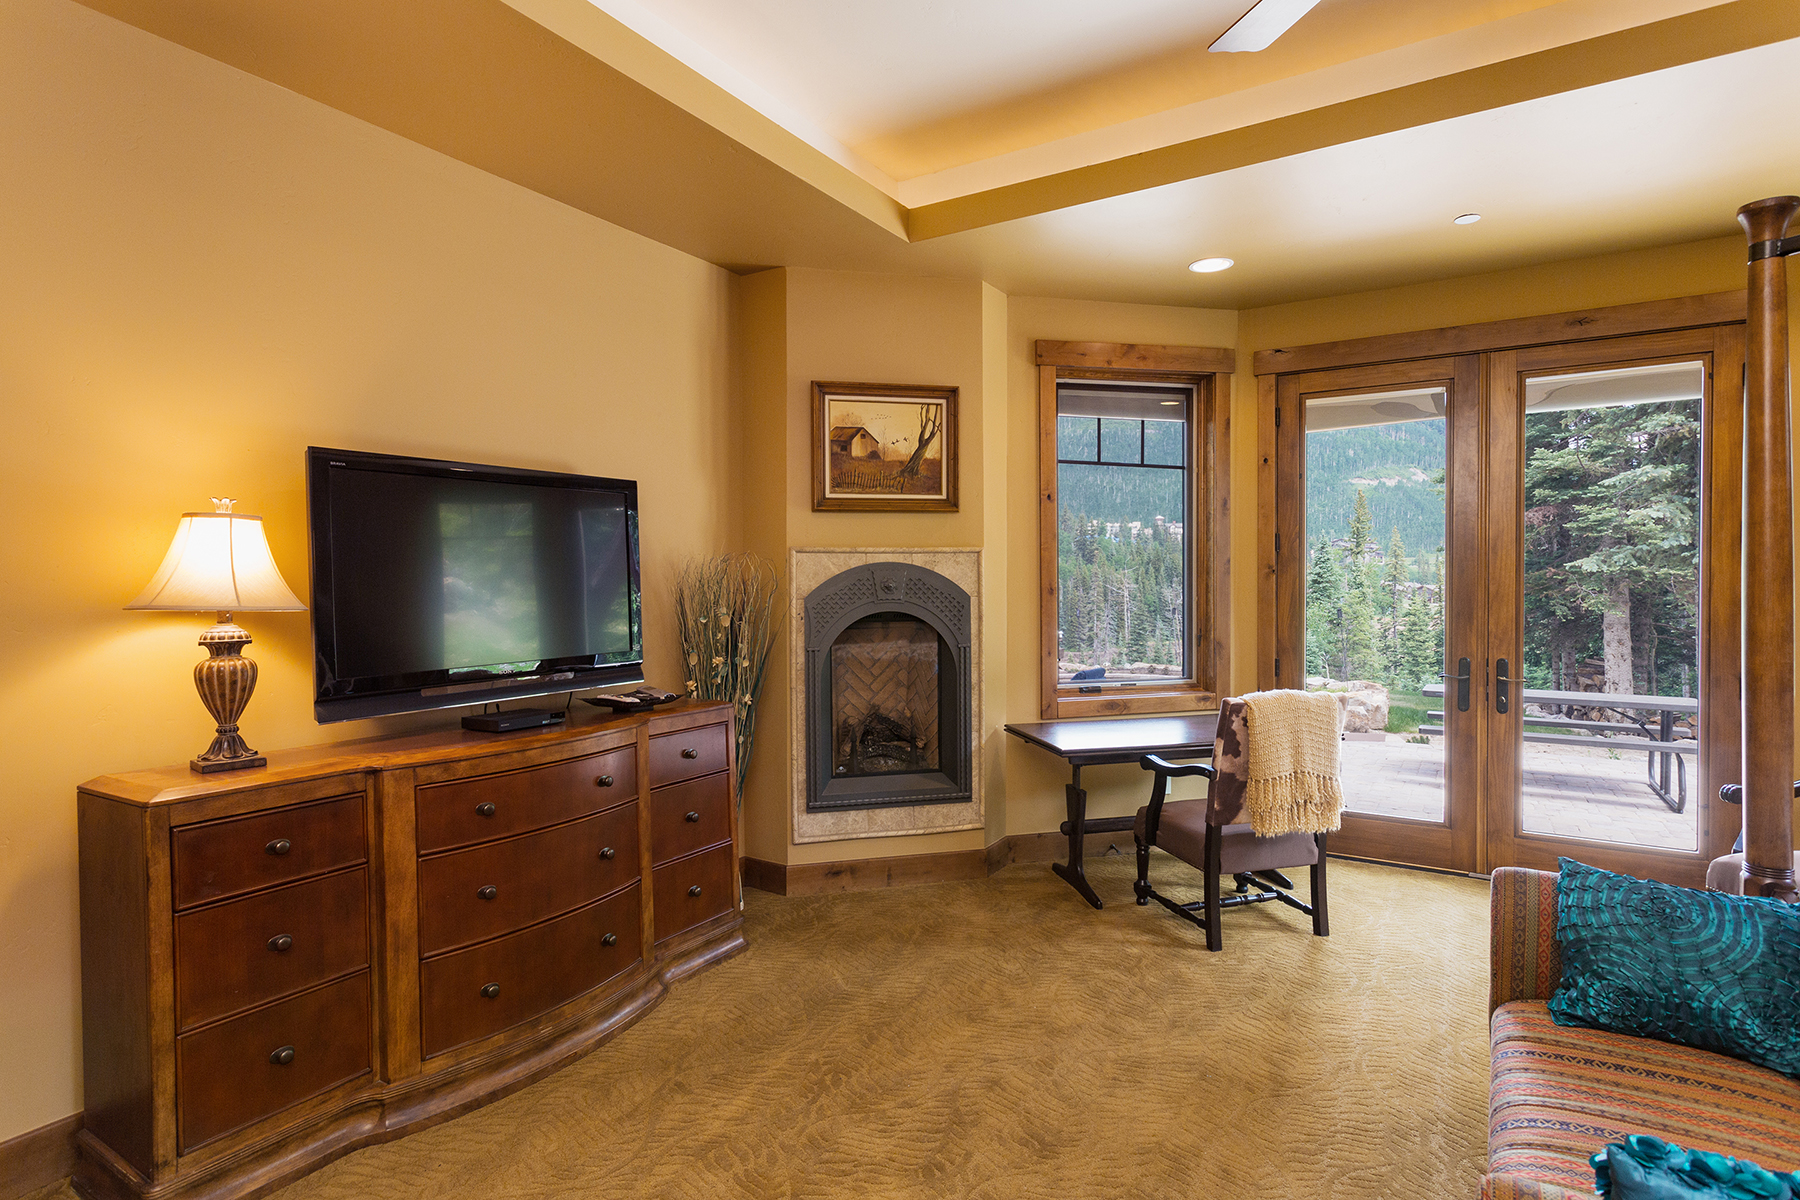 Additional photo for property listing at Engineer Village 332 Engineer Durango, Colorado 81301 United States